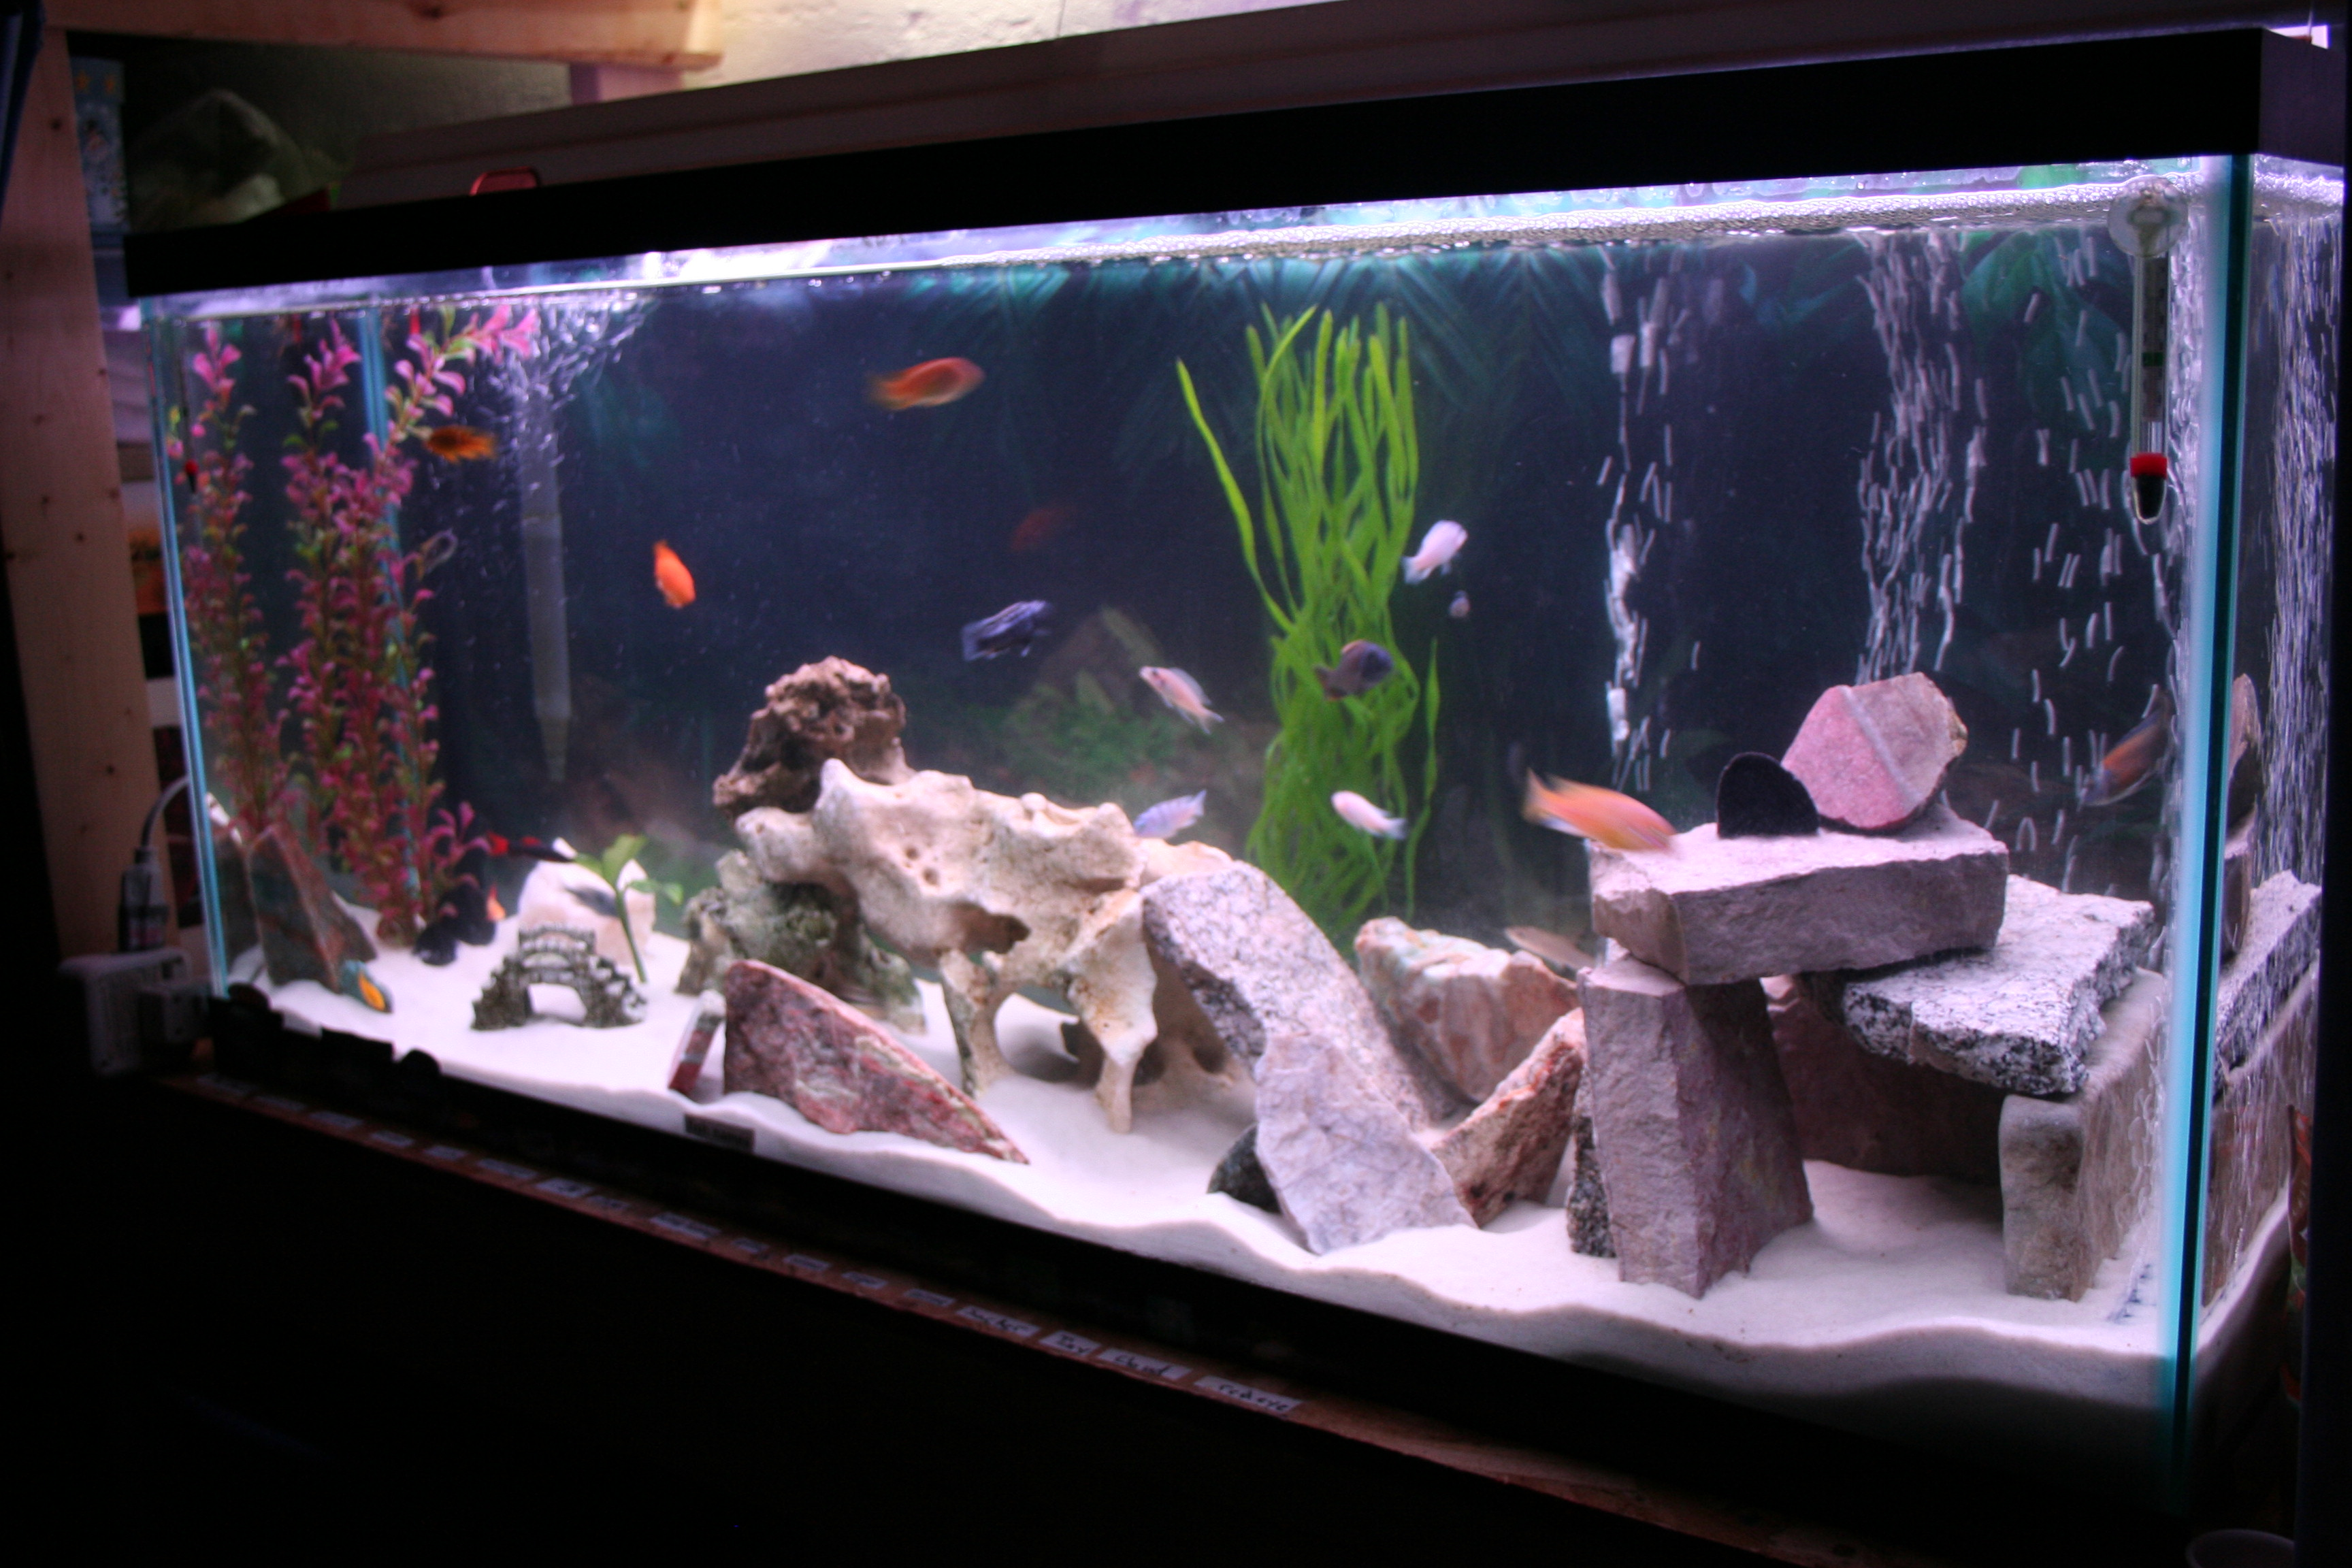 Fish tank decorations for cichlids aquarium rock cave for How to decorate fish tank